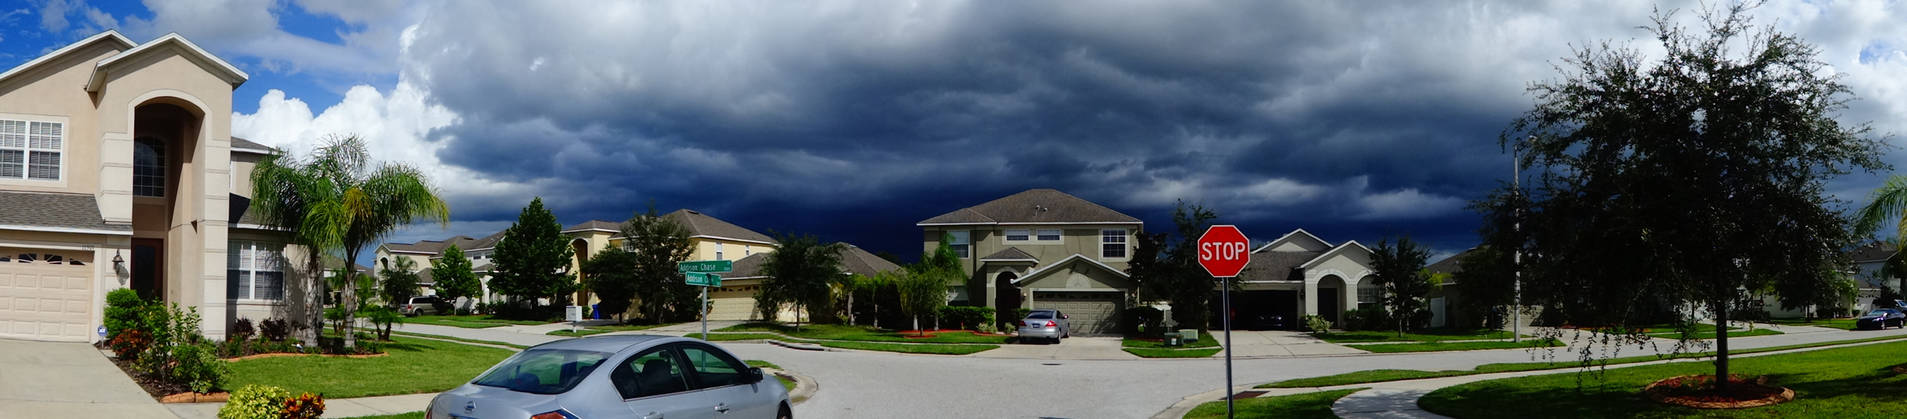 Storm Clouds Brewing